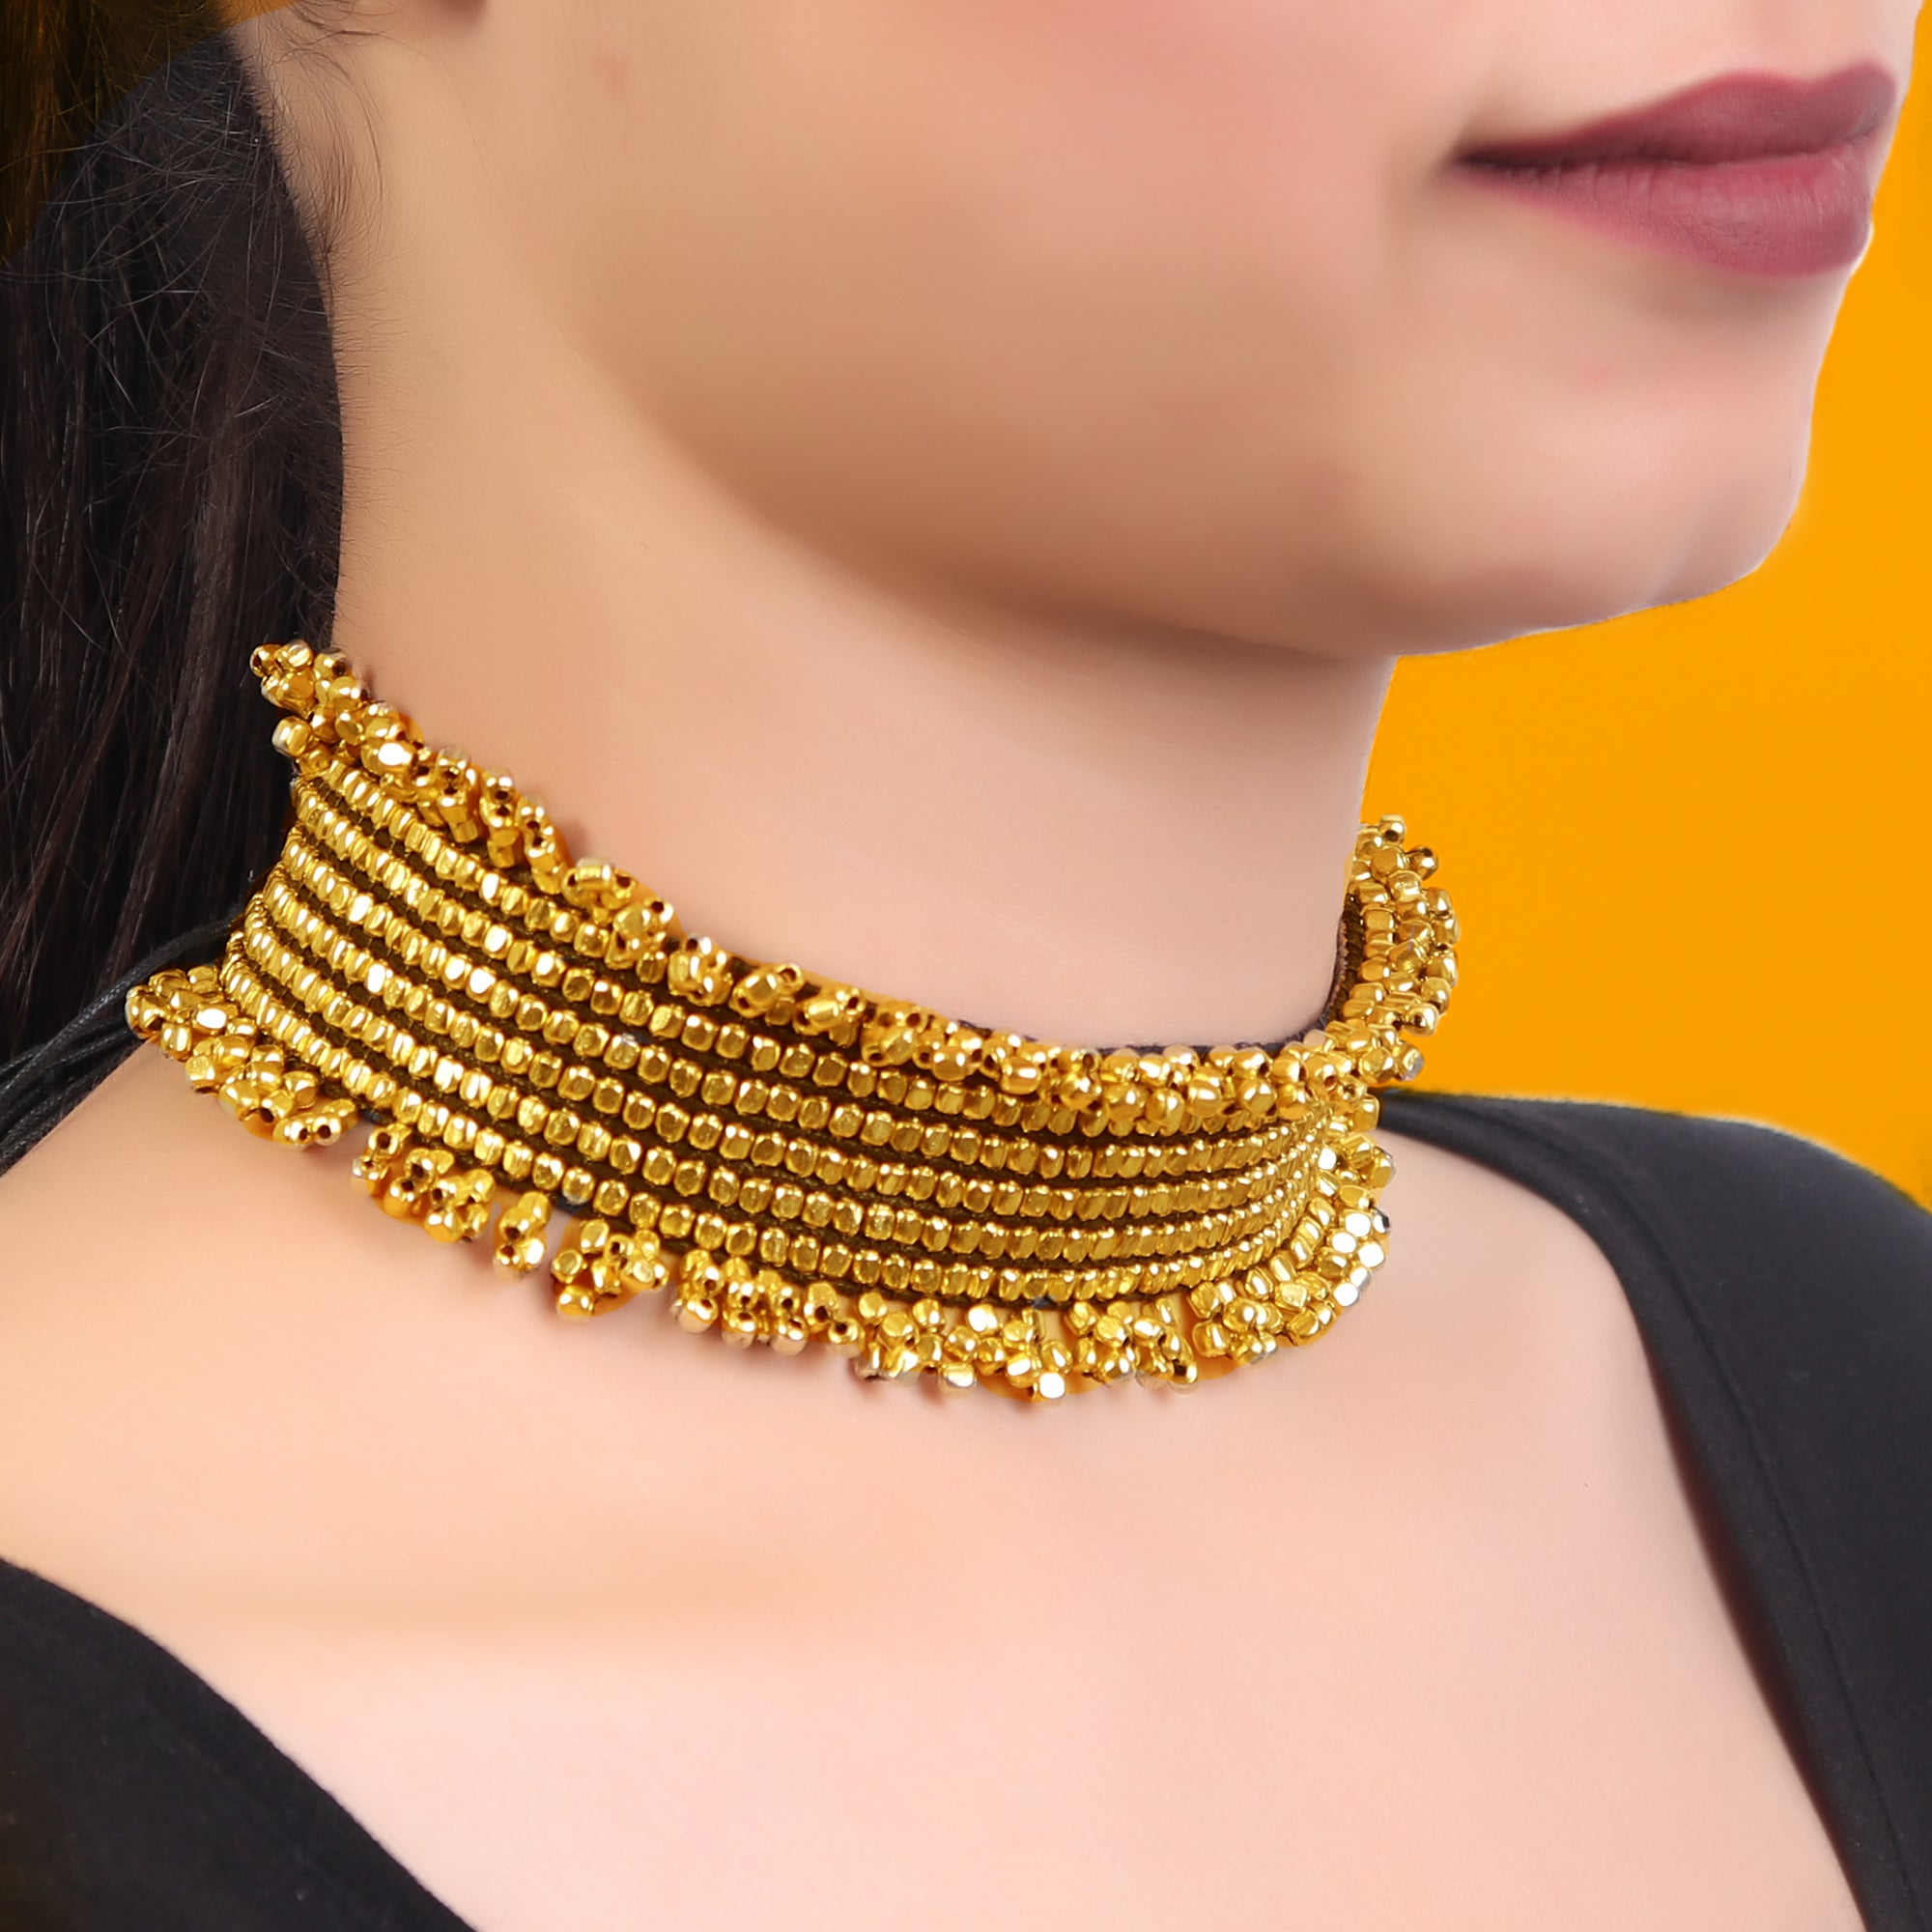 Necklace,Bold in Gold Choker - Cippele Multi Store